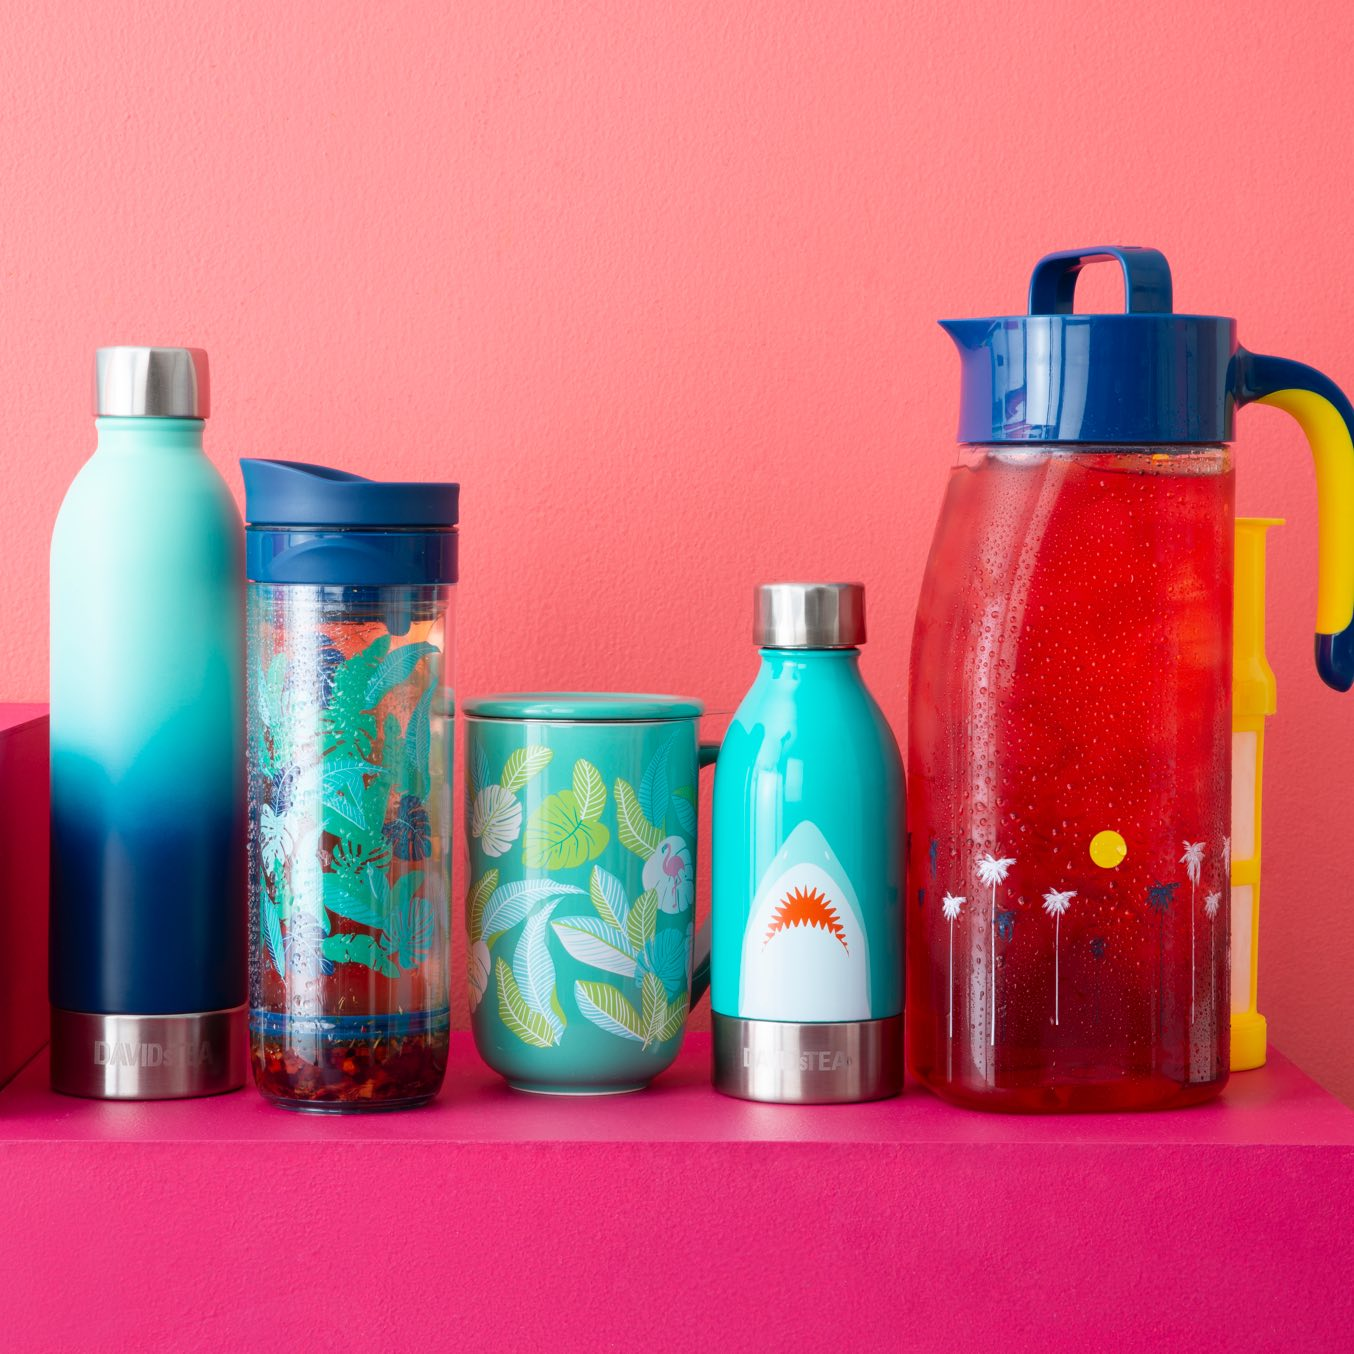 16 oz tea bottle, 16 oz travel mug with leaf print, 16 oz ceramic mug, 10 oz stainless steel bottle, 2L iced tea pitcher.